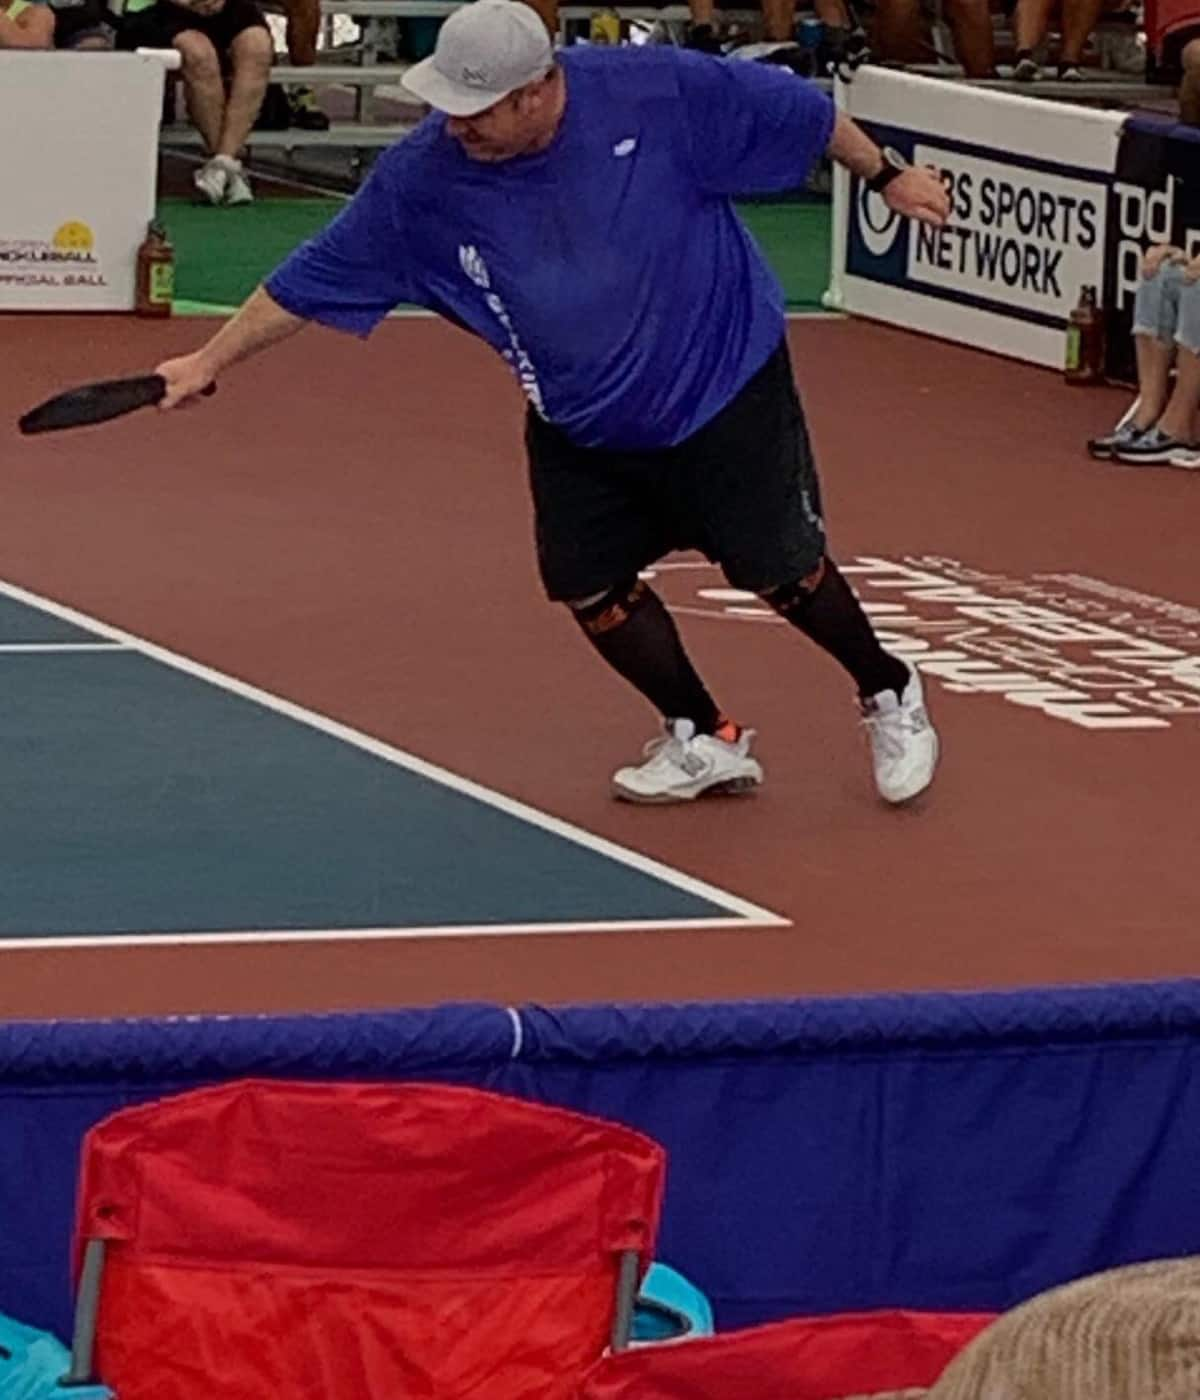 Don't let the name fool you, Pickleball means business